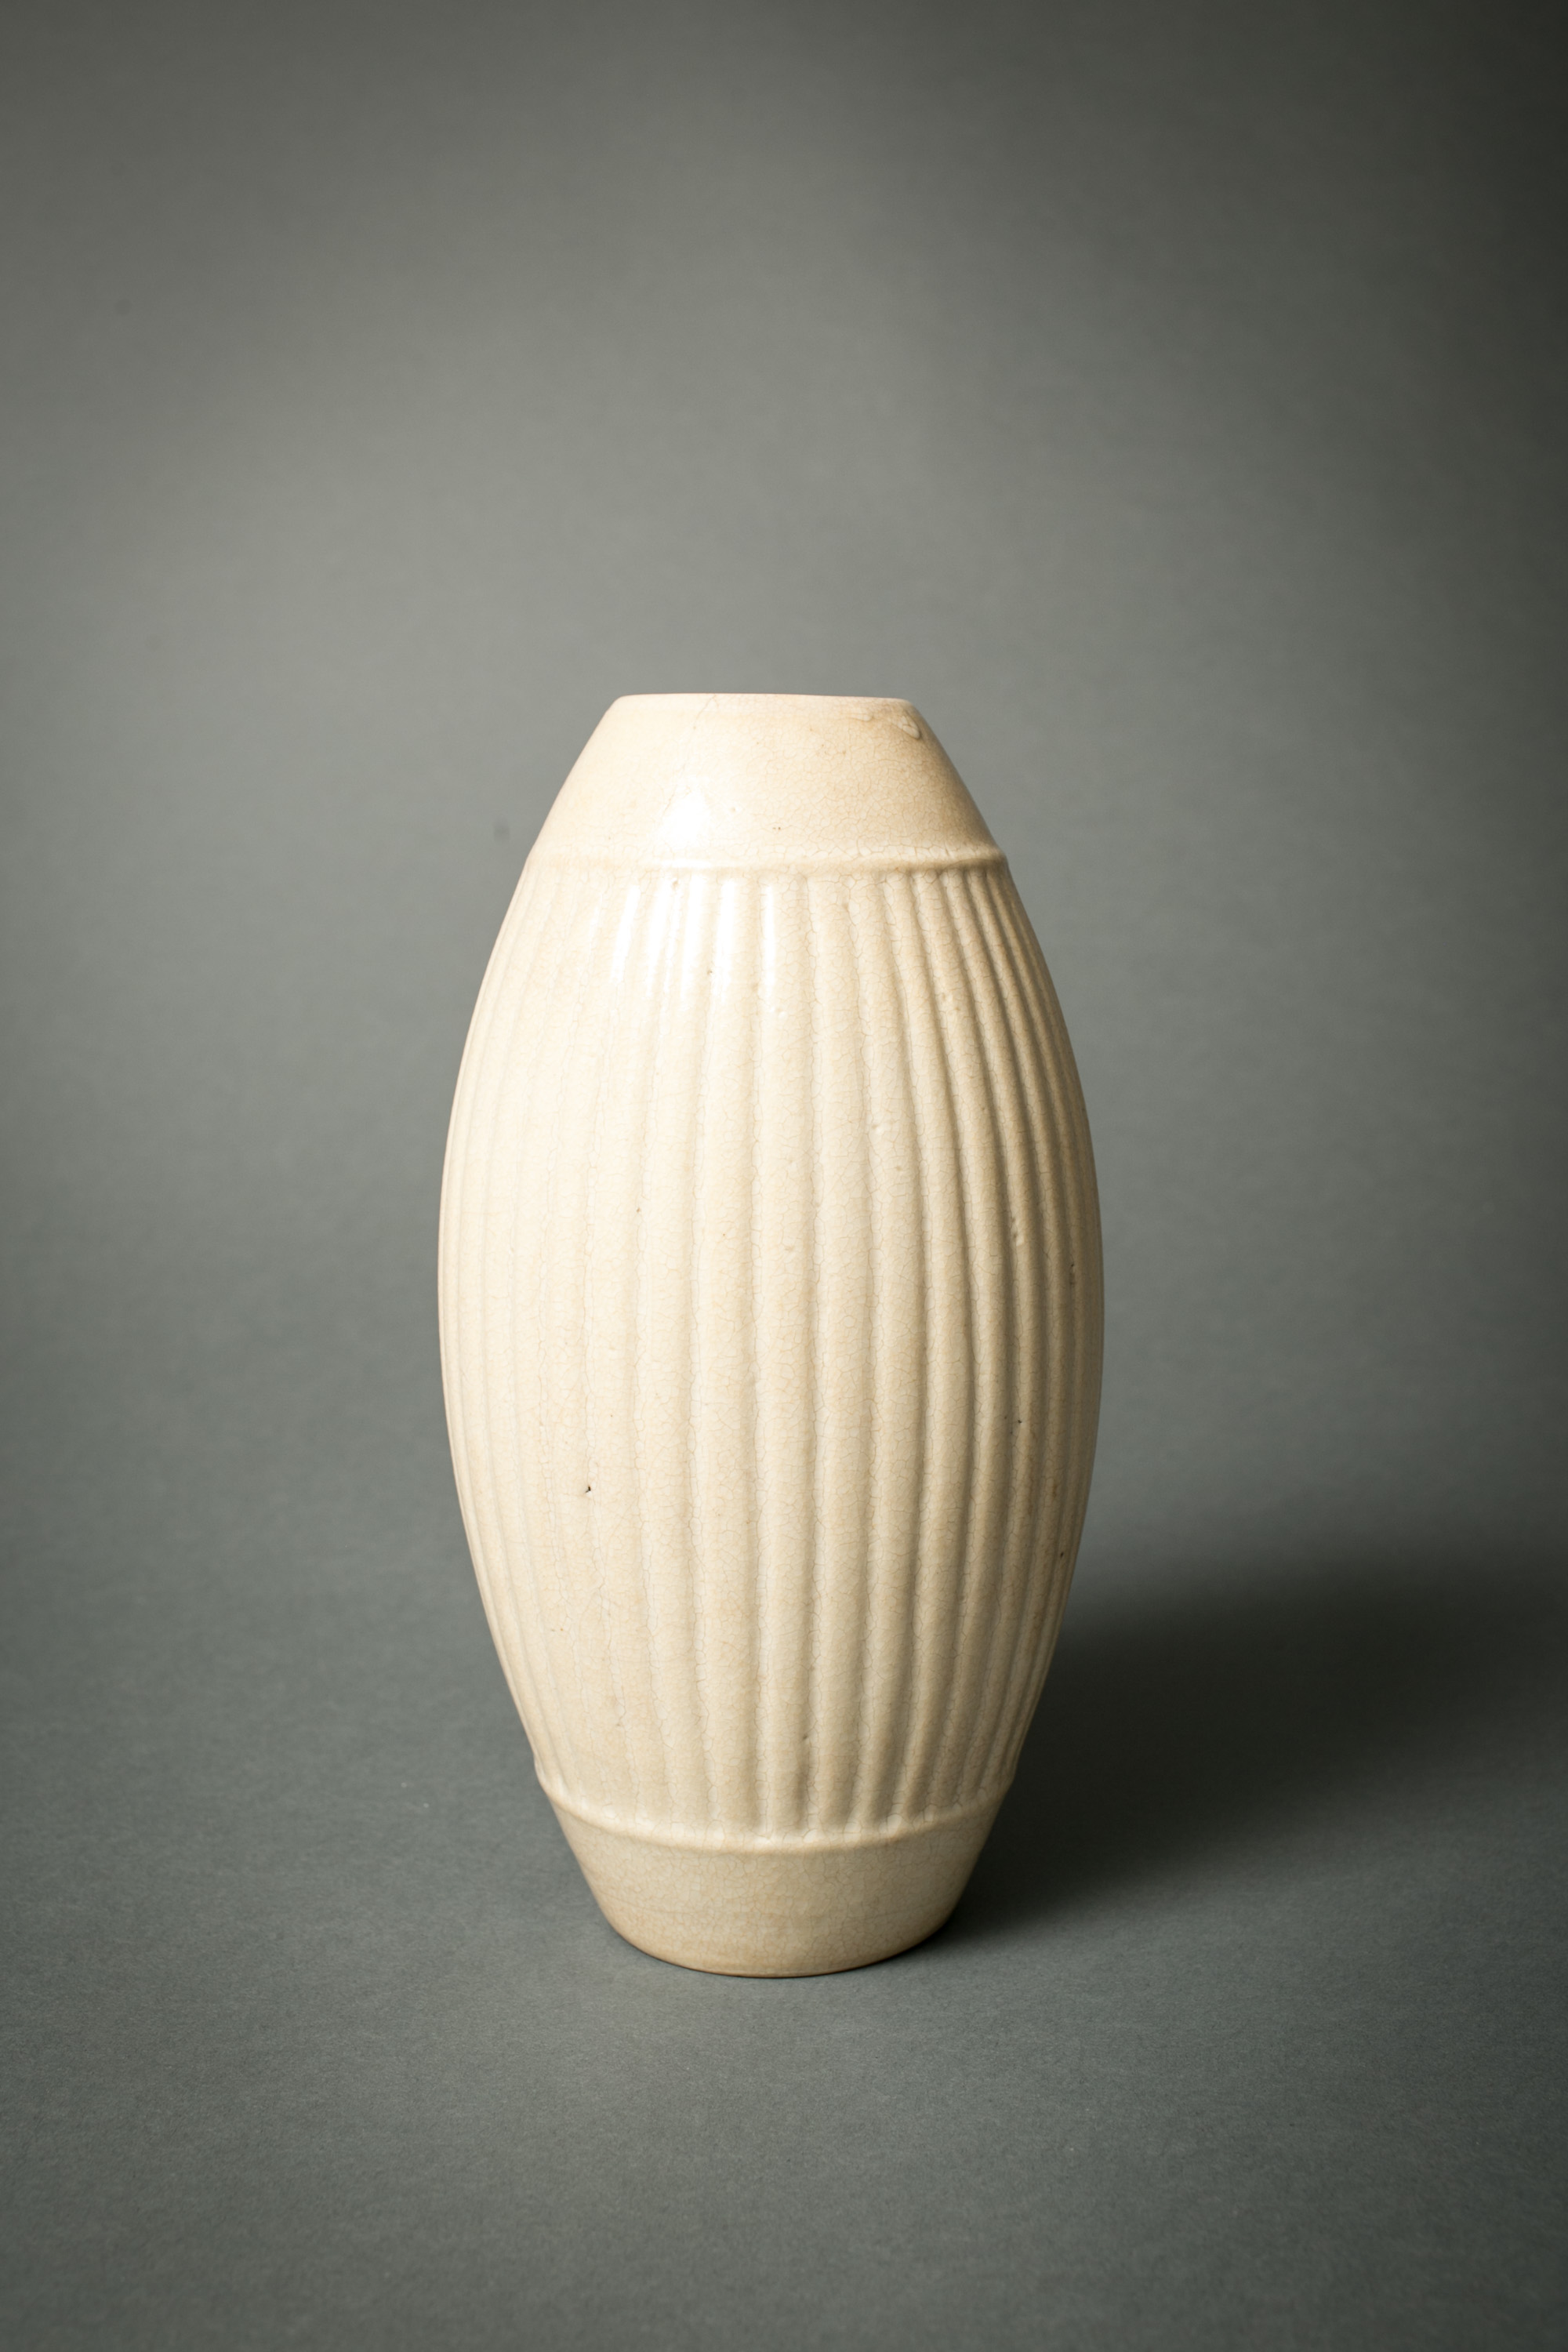 Sung Period Vase in the Form of a Drum